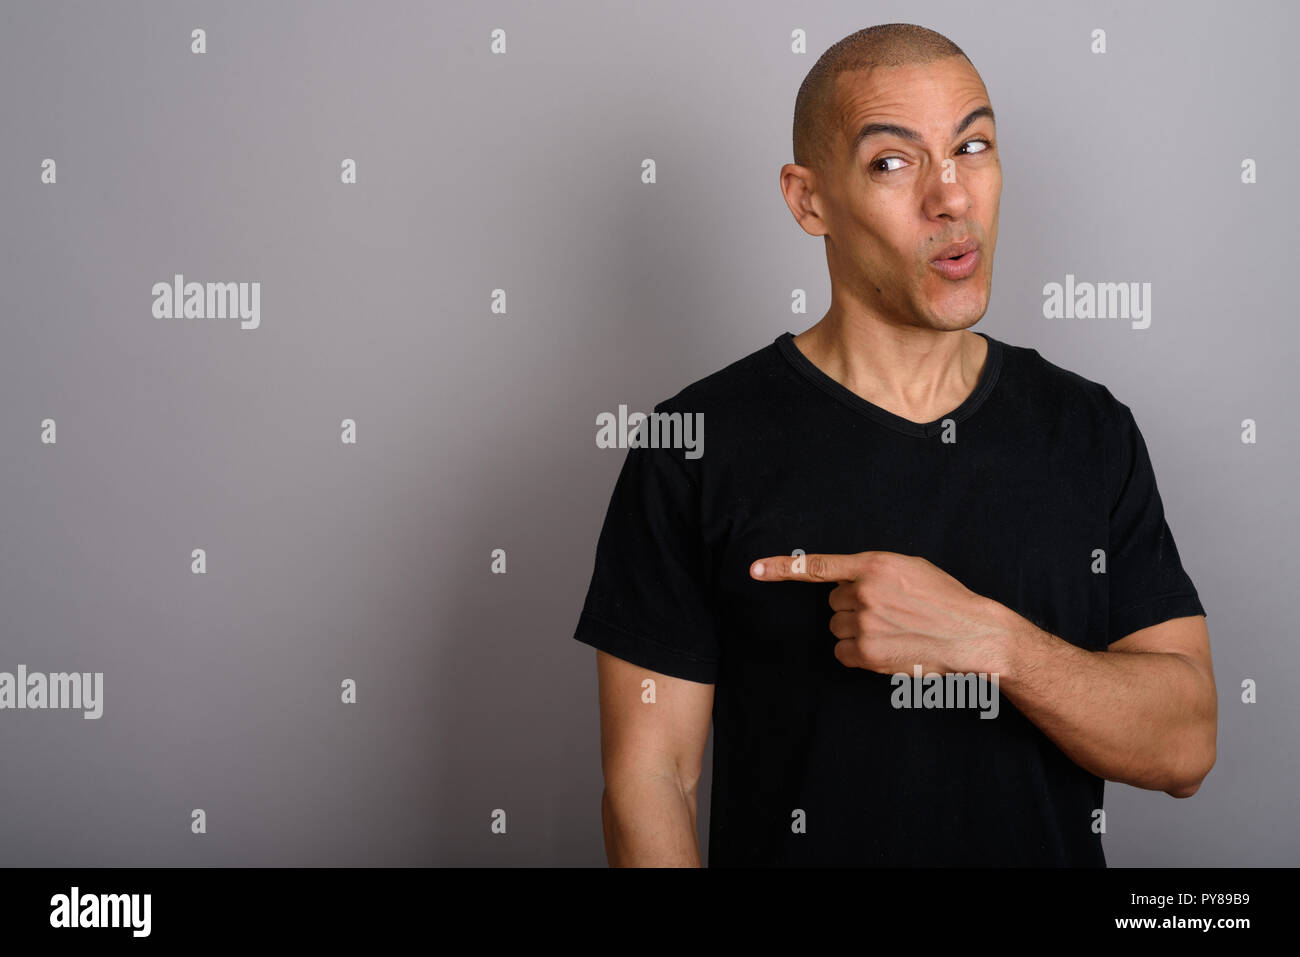 Handsome bald man looking disgusted and pointing finger - Stock Image